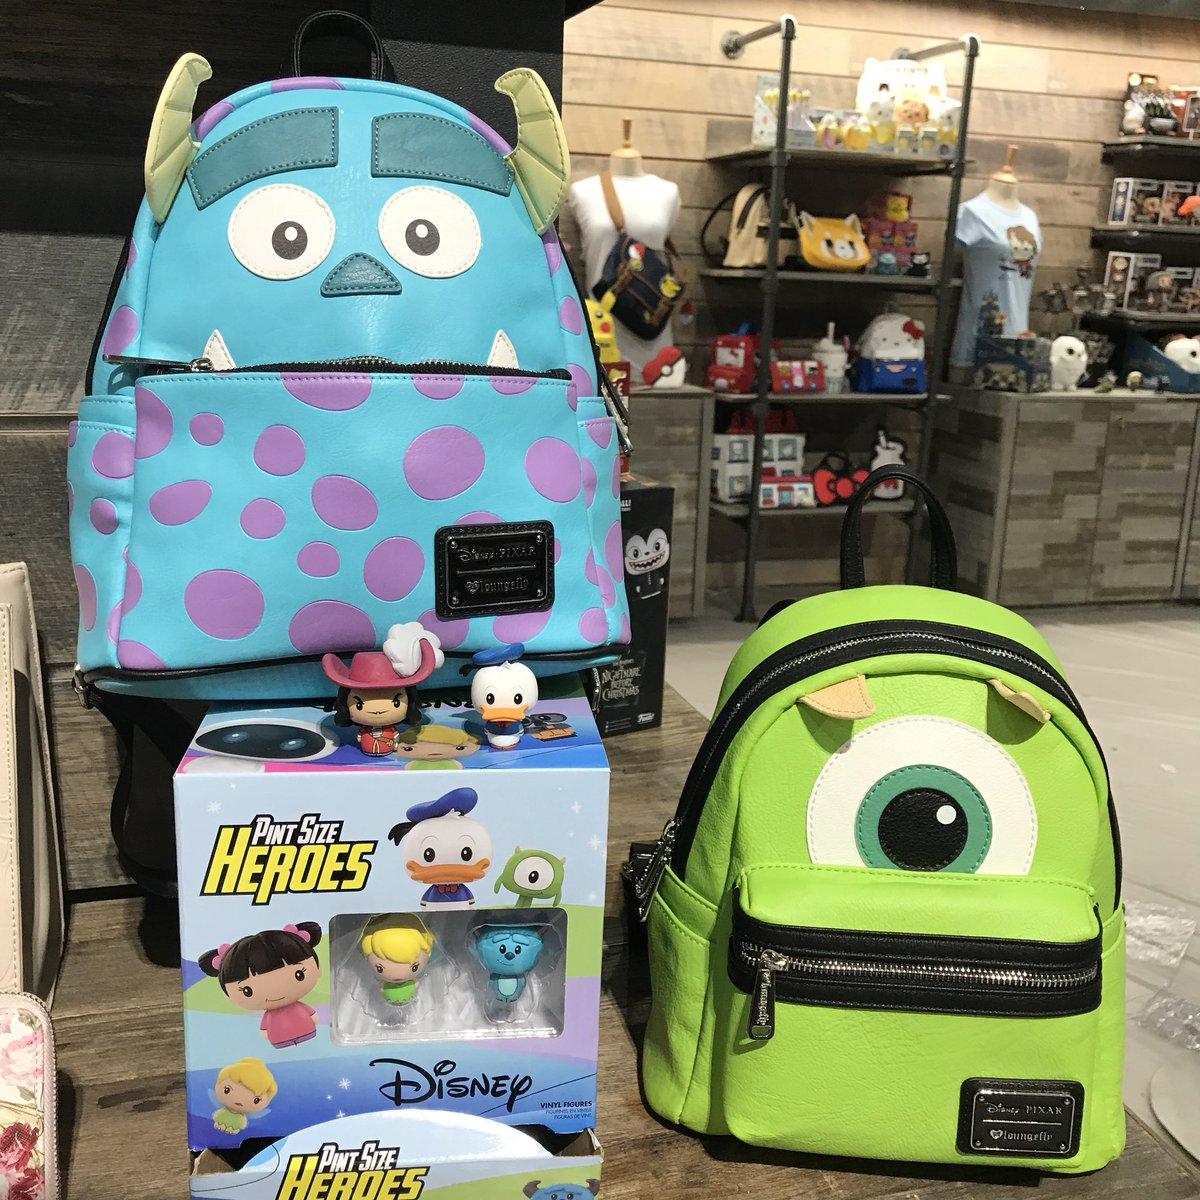 Loungefly On Twitter How Cute Are These New Monstersinc Mini Backpacks Loungeflytfny Toyfair2018 Funkotfny